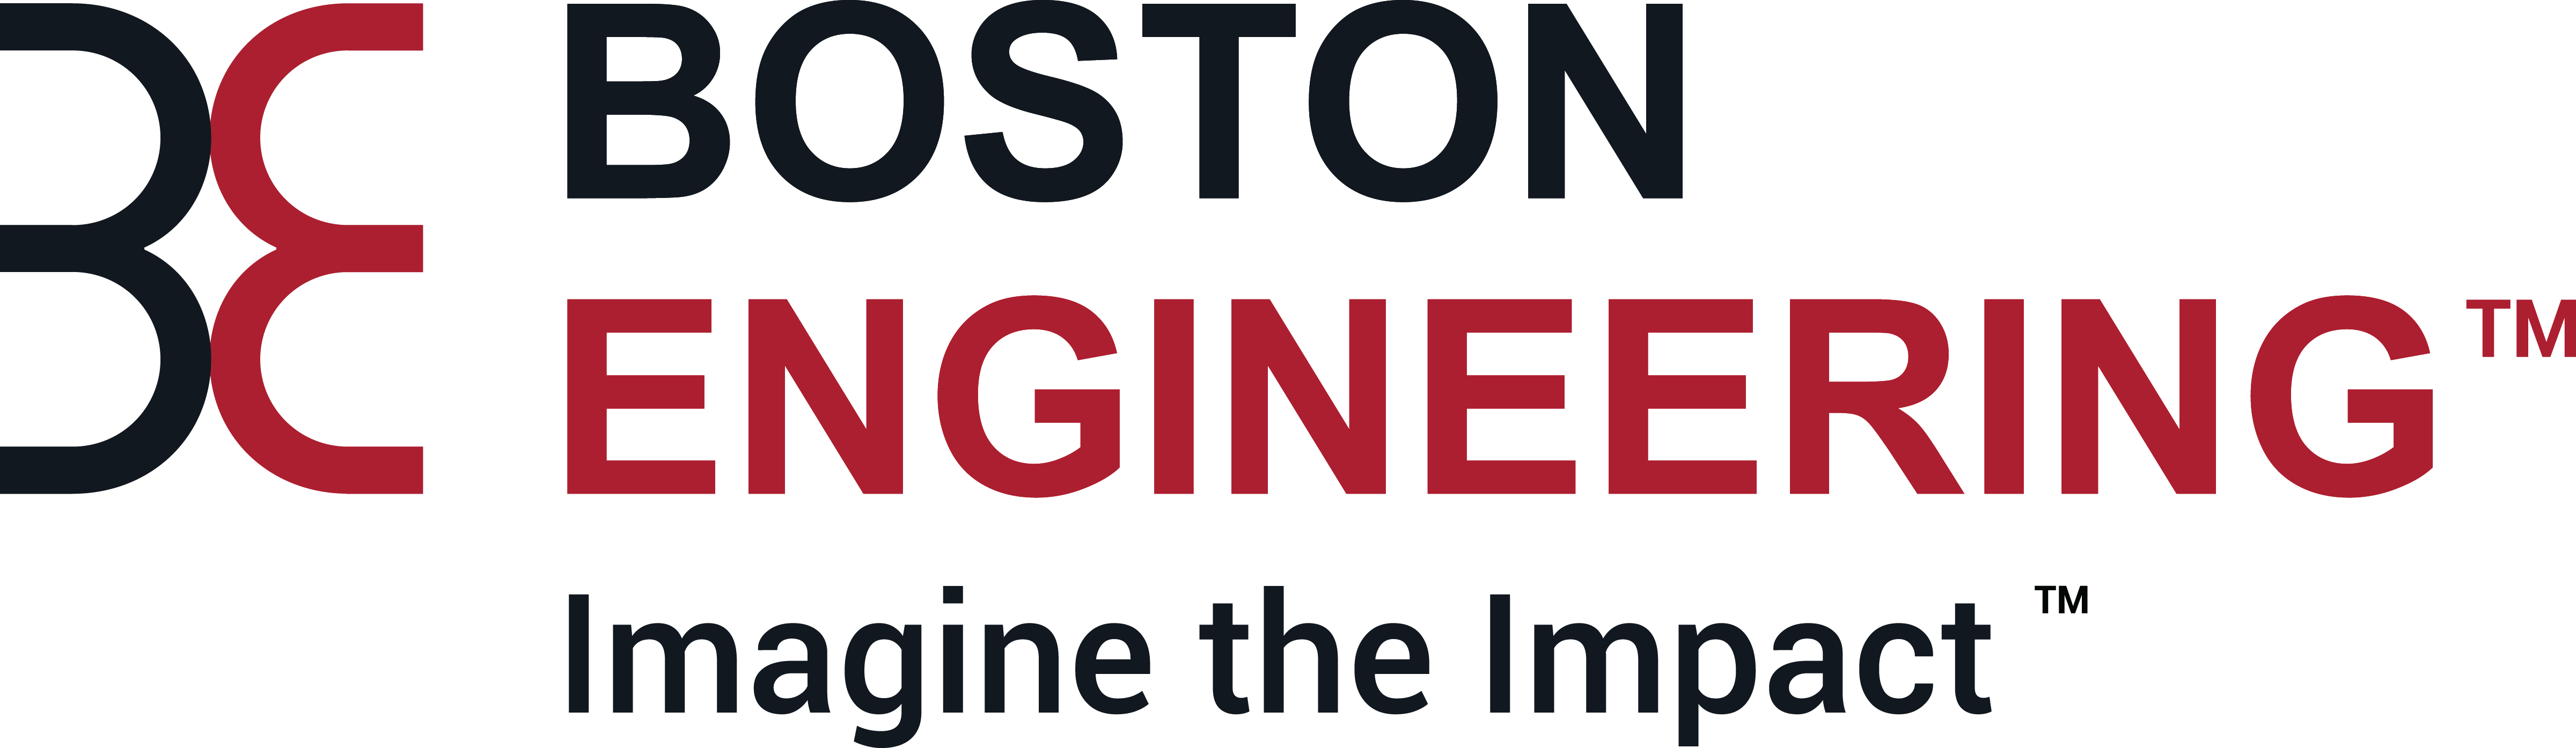 Boston Engineering-logo-tagline-tm no bg